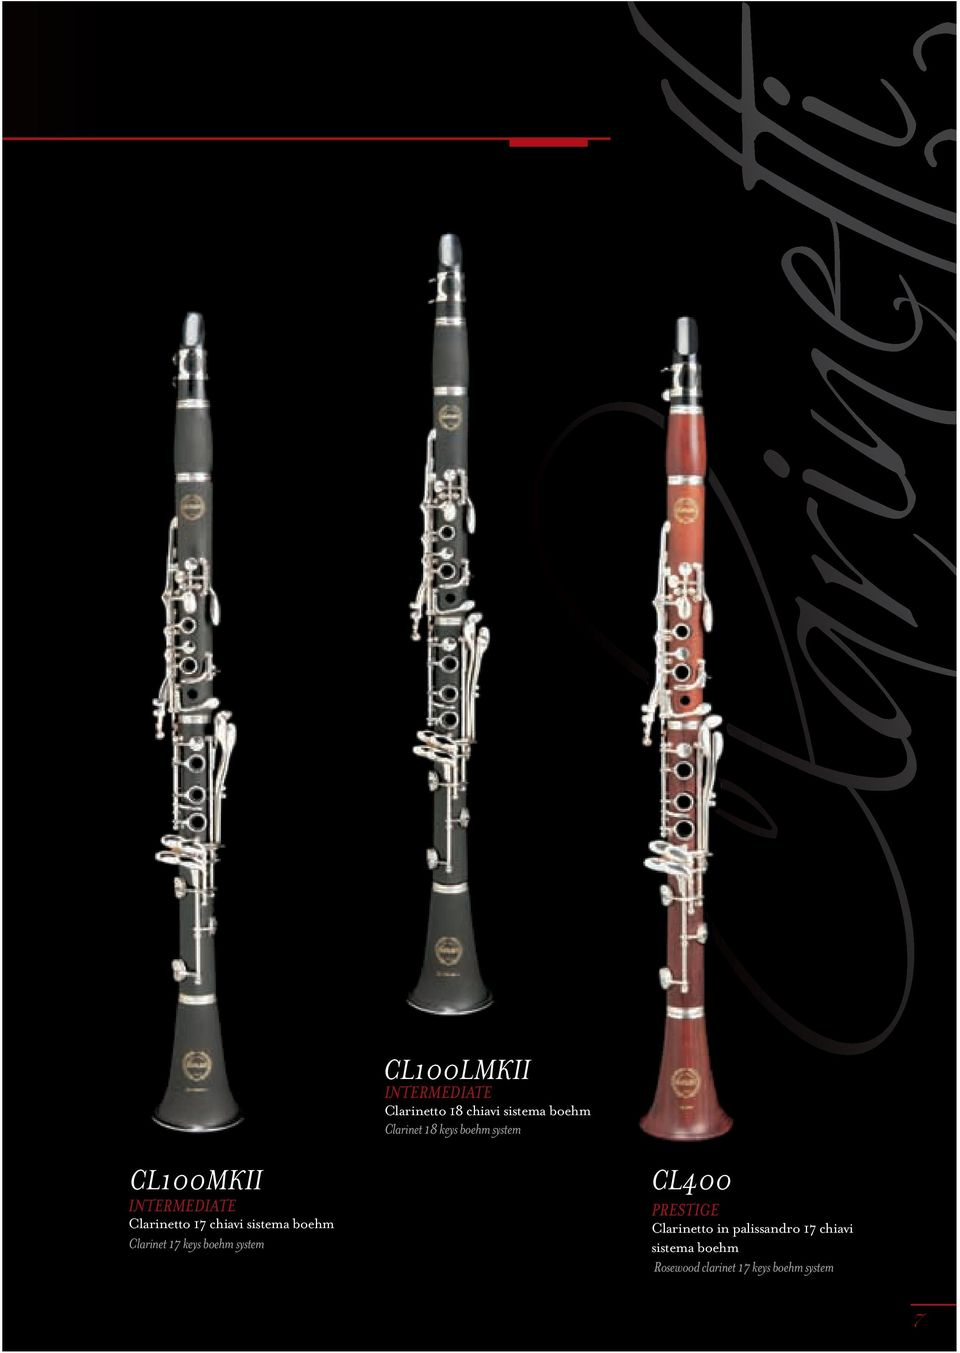 boehm Clarinet 17 keys boehm system CL400 PRESTIGE Clarinetto in